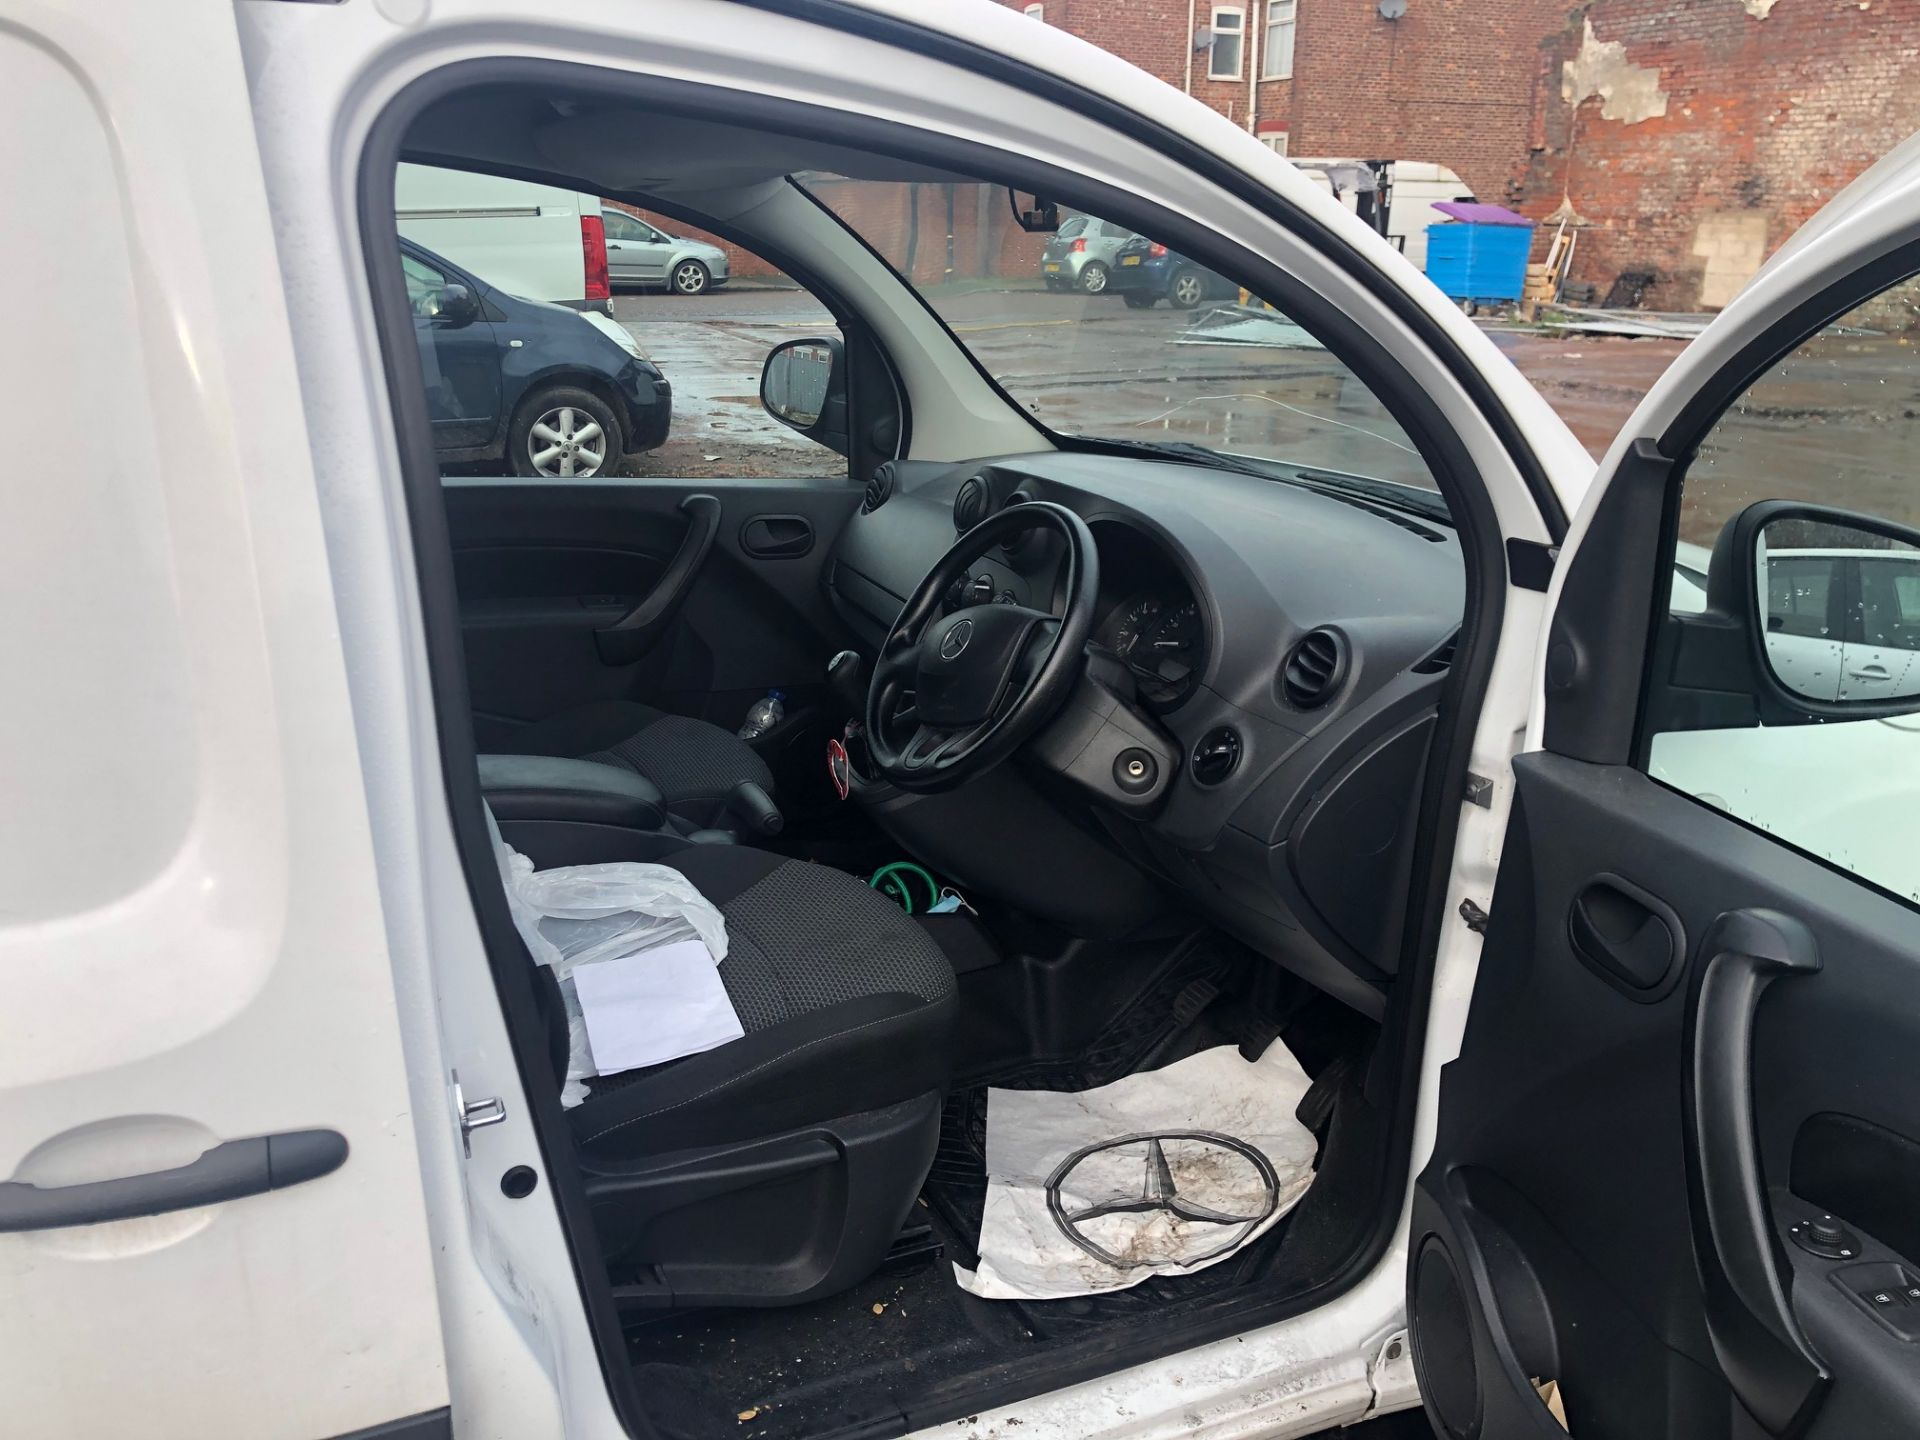 2014/63 REG MERCEDES-BENZ CITAN 109 CDI 1.5 DIESEL WHITE PANEL VAN, SHOWING 1 FORMER KEEPER - Image 10 of 13